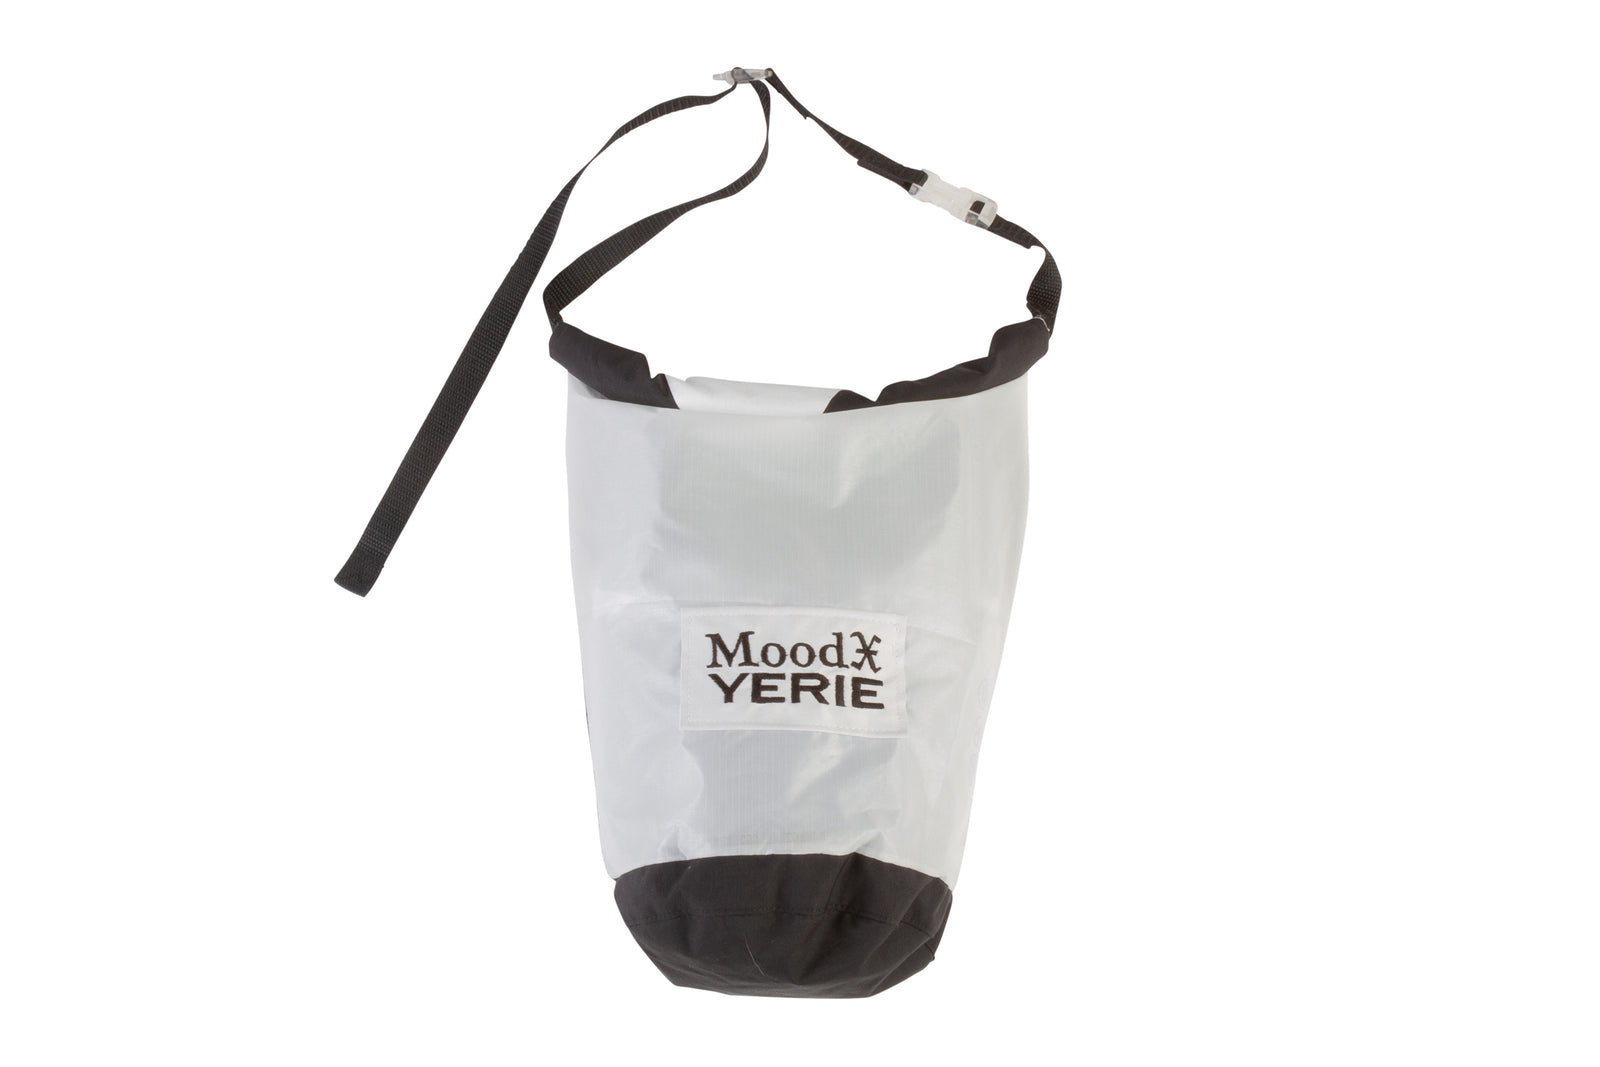 Newport Roll Up Bag, Mood X Yerie